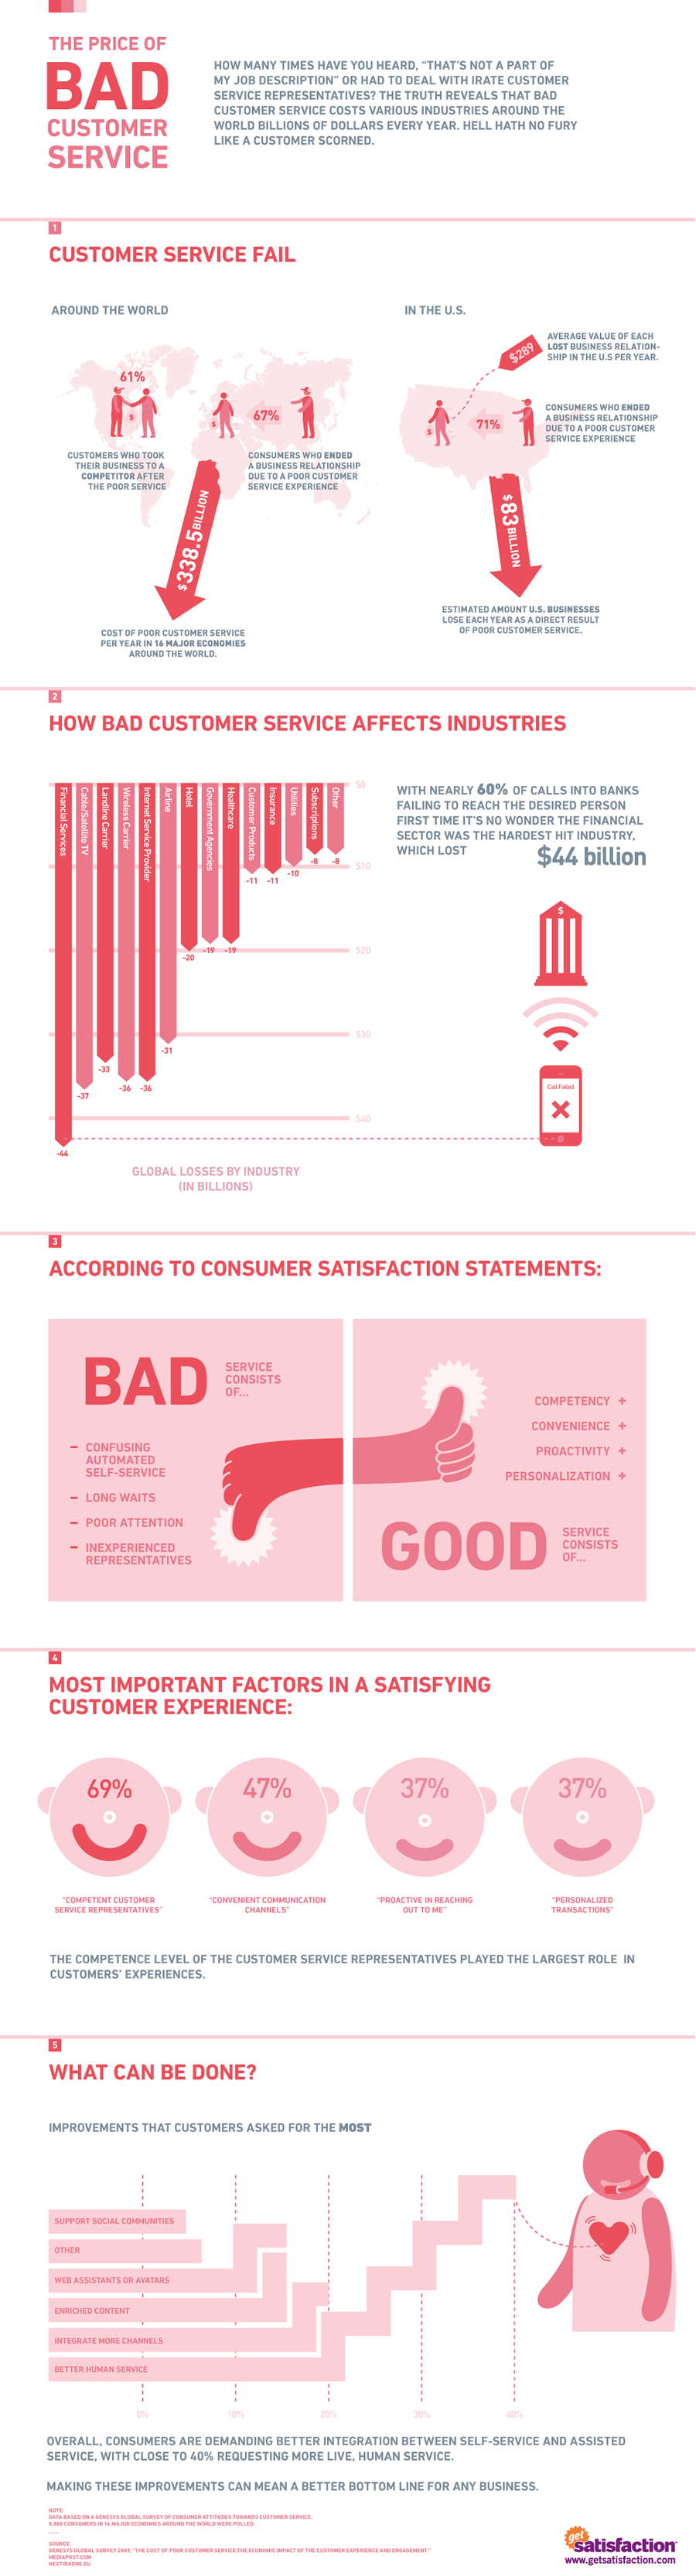 The Price Of Bad Customer Service Most Important Factors In